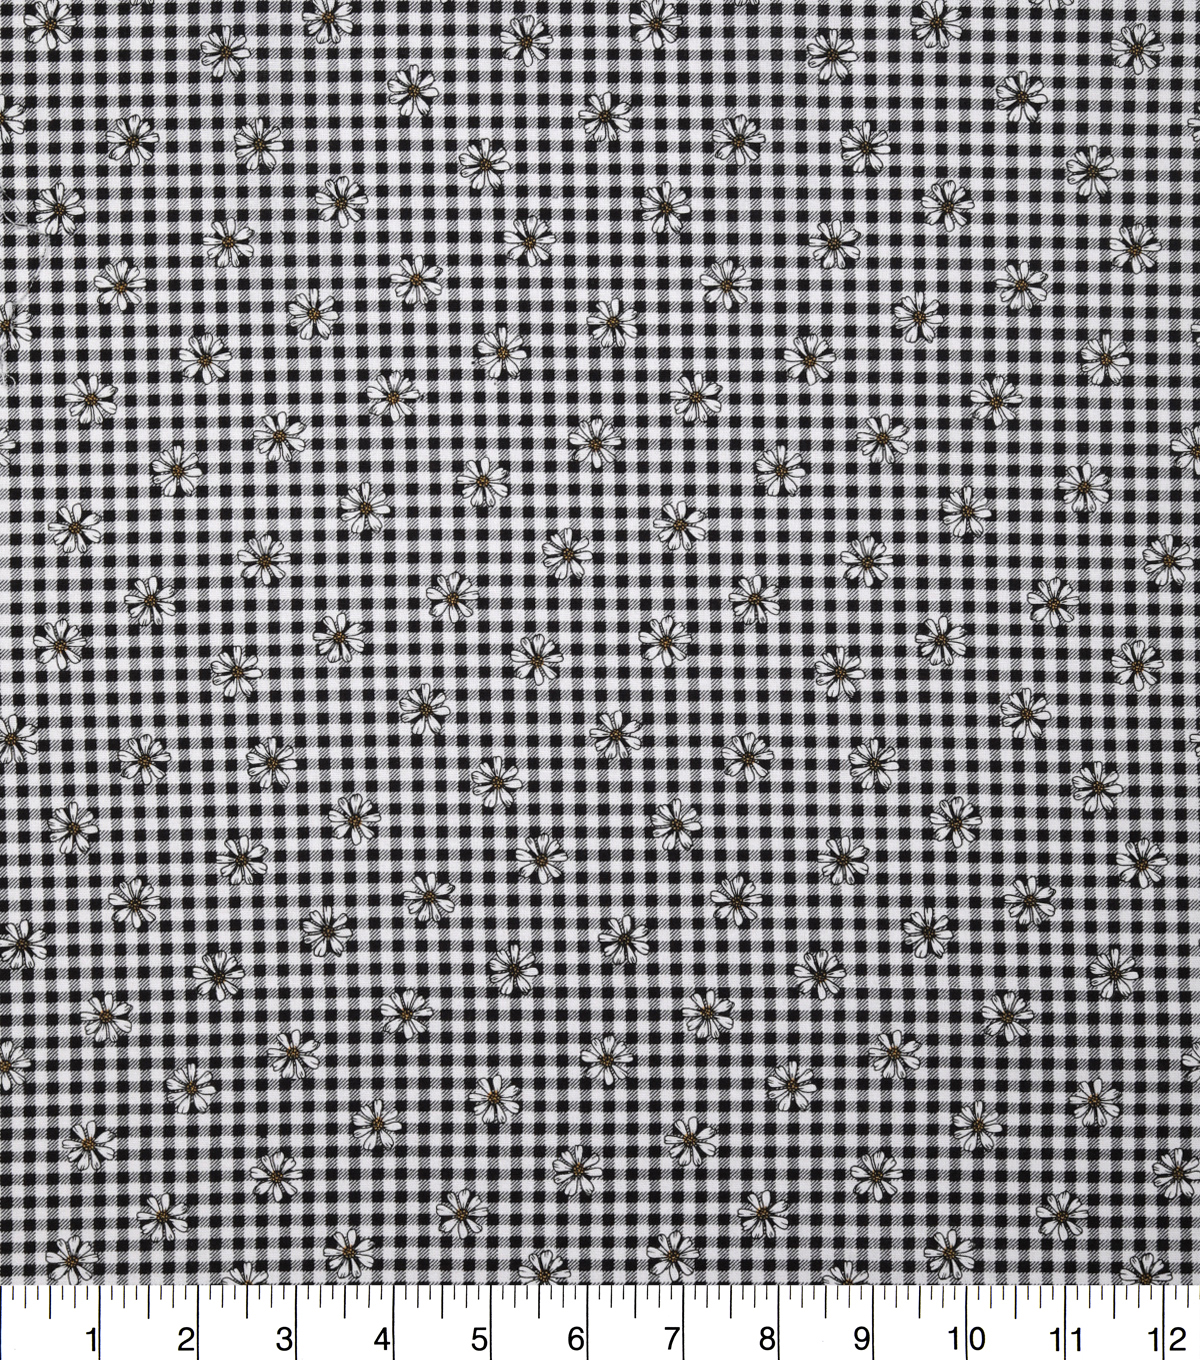 Keepsake Calico Cotton Fabric-Black Gingham Daisy